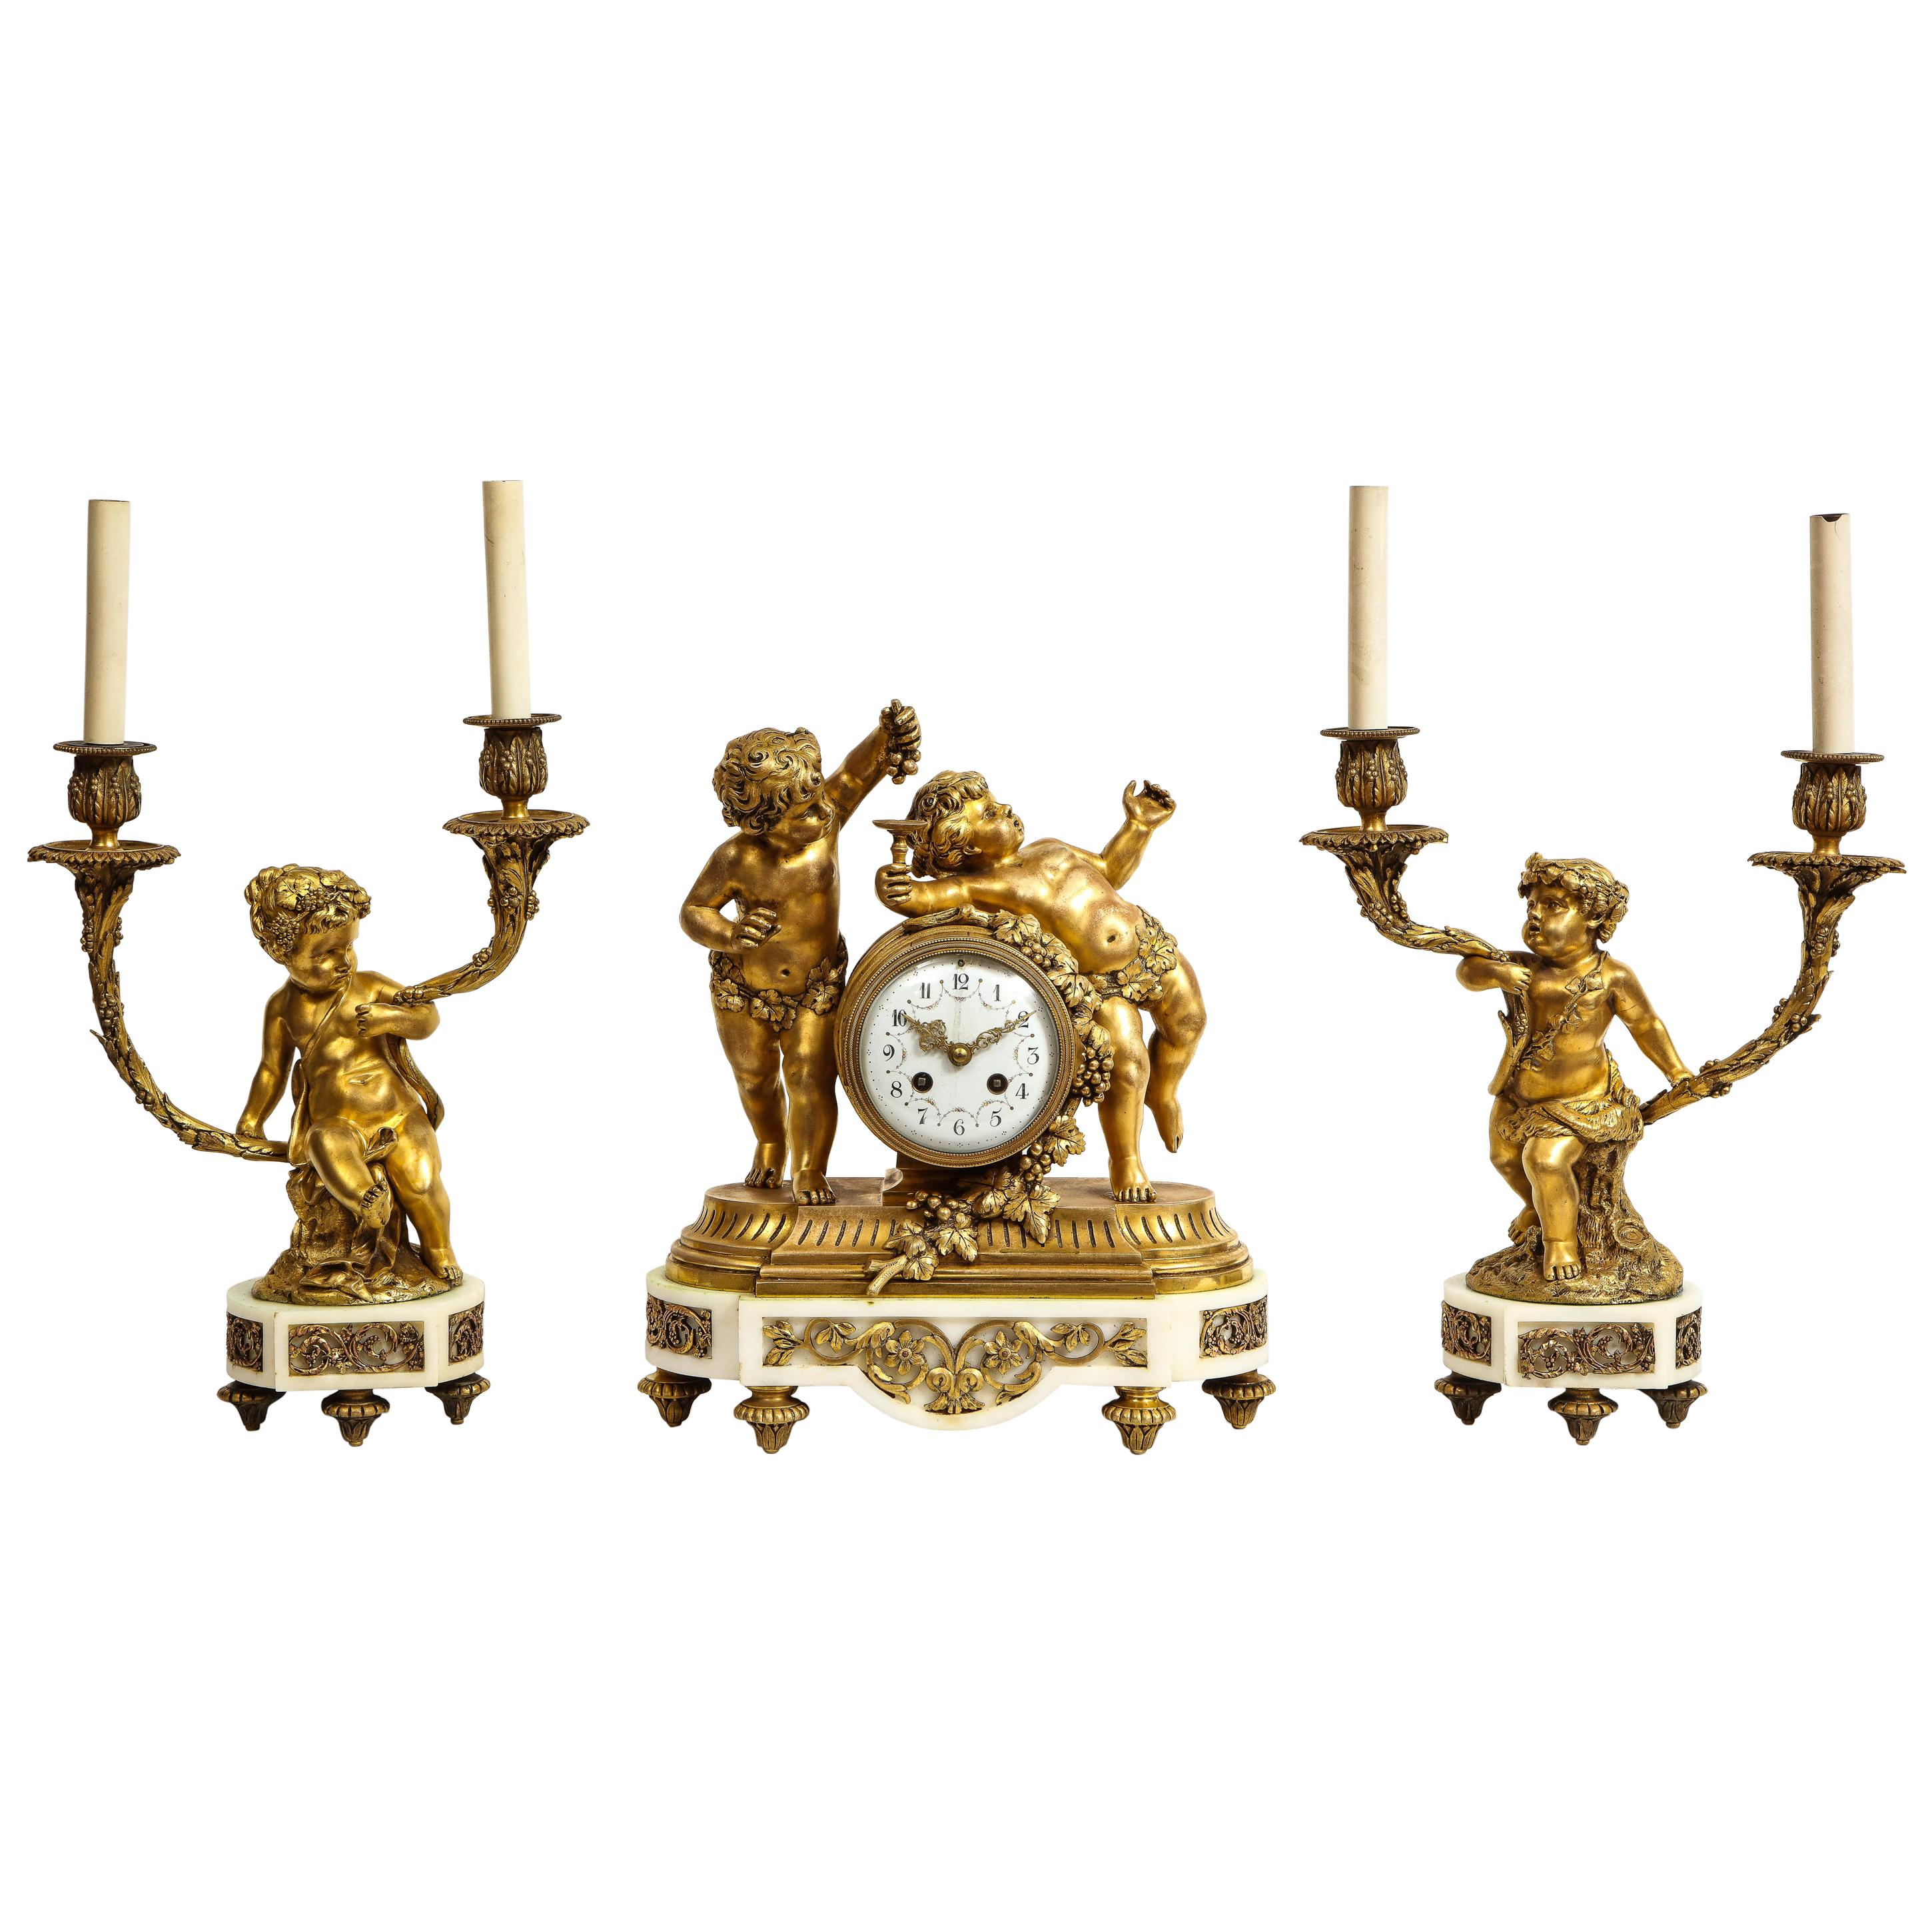 French Ormolu-Mounted White Marble Three Piece Clock Garniture, Clodion